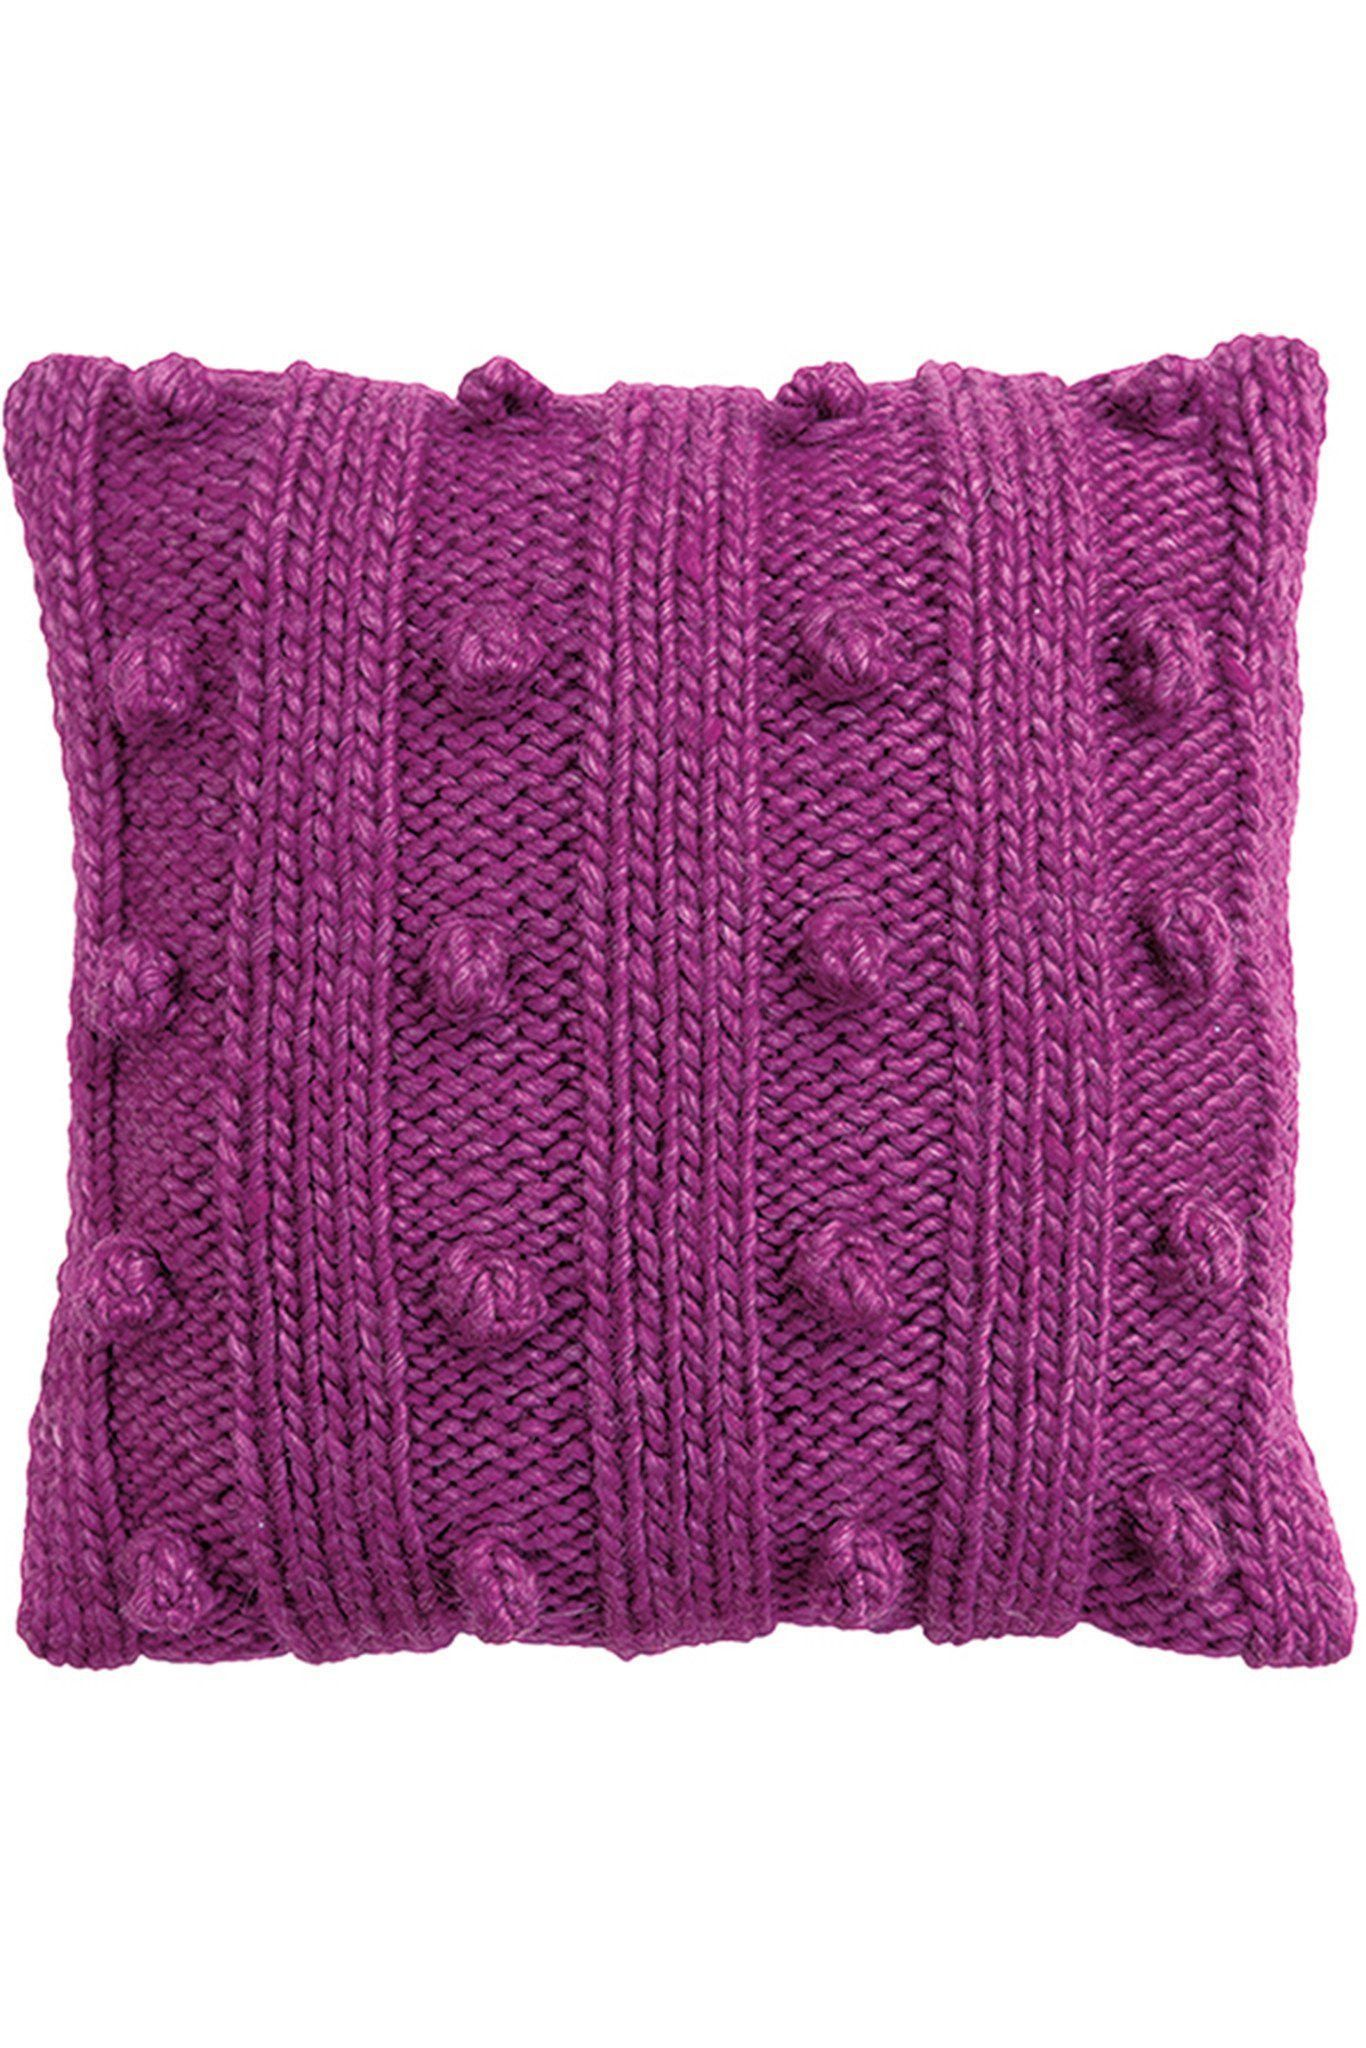 Set Of 4 Cushion Cover Knitting Patterns | The Knitting ...